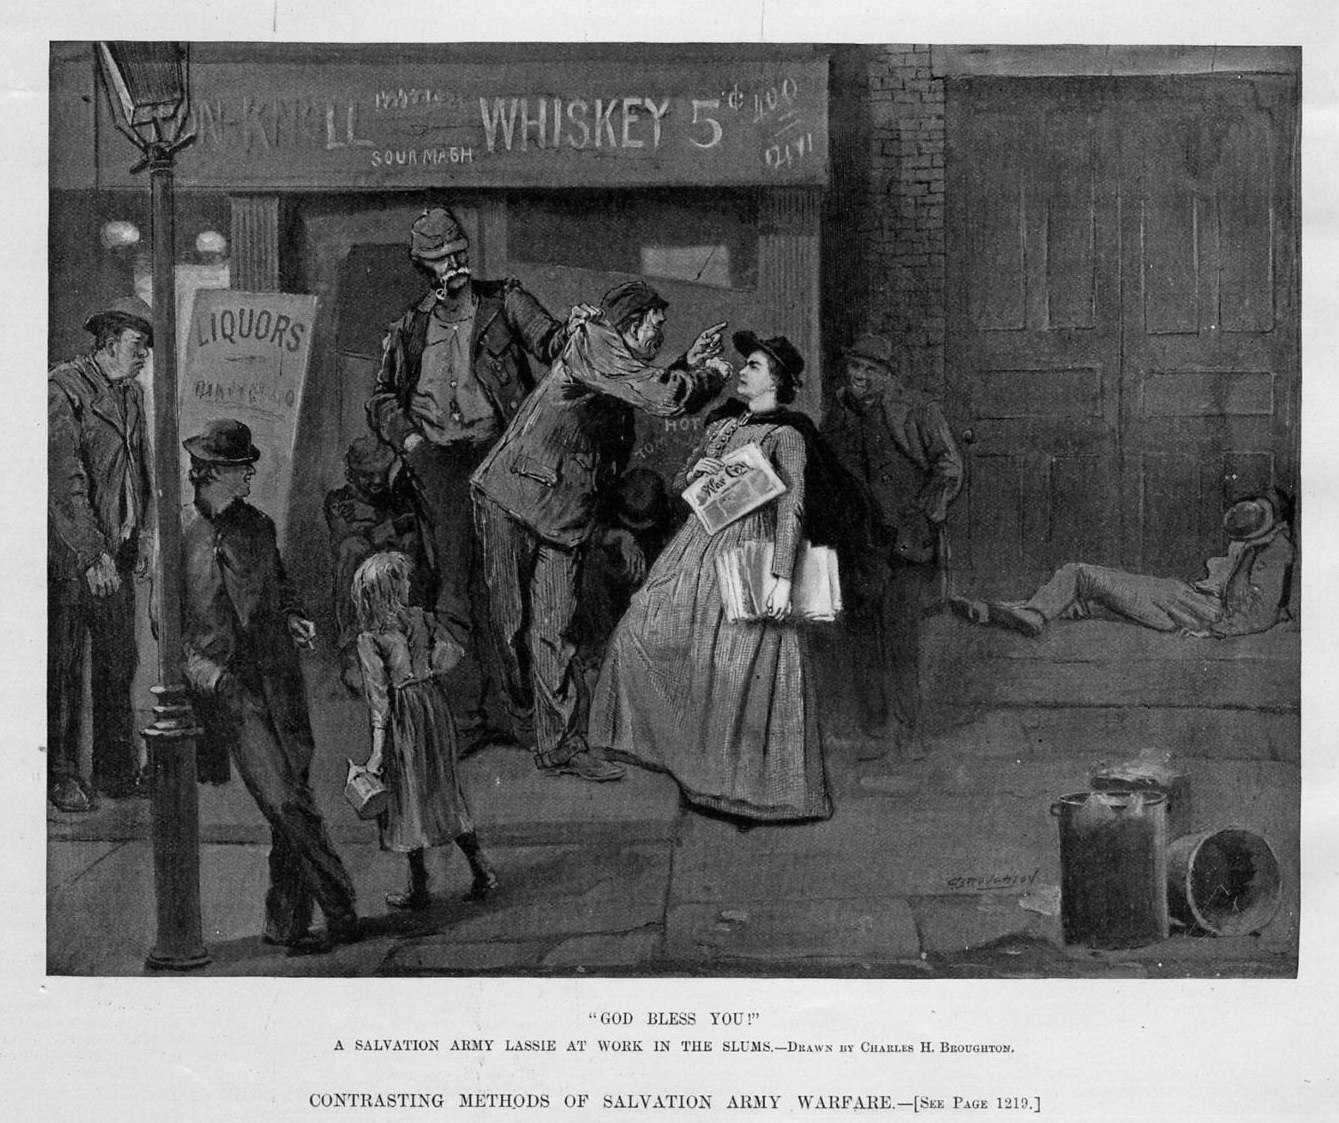 SALVATION ARMY WARFARE METHODS A LASSIE AT WORK IN THE SLUMS LIQUOR STORE DRUNK